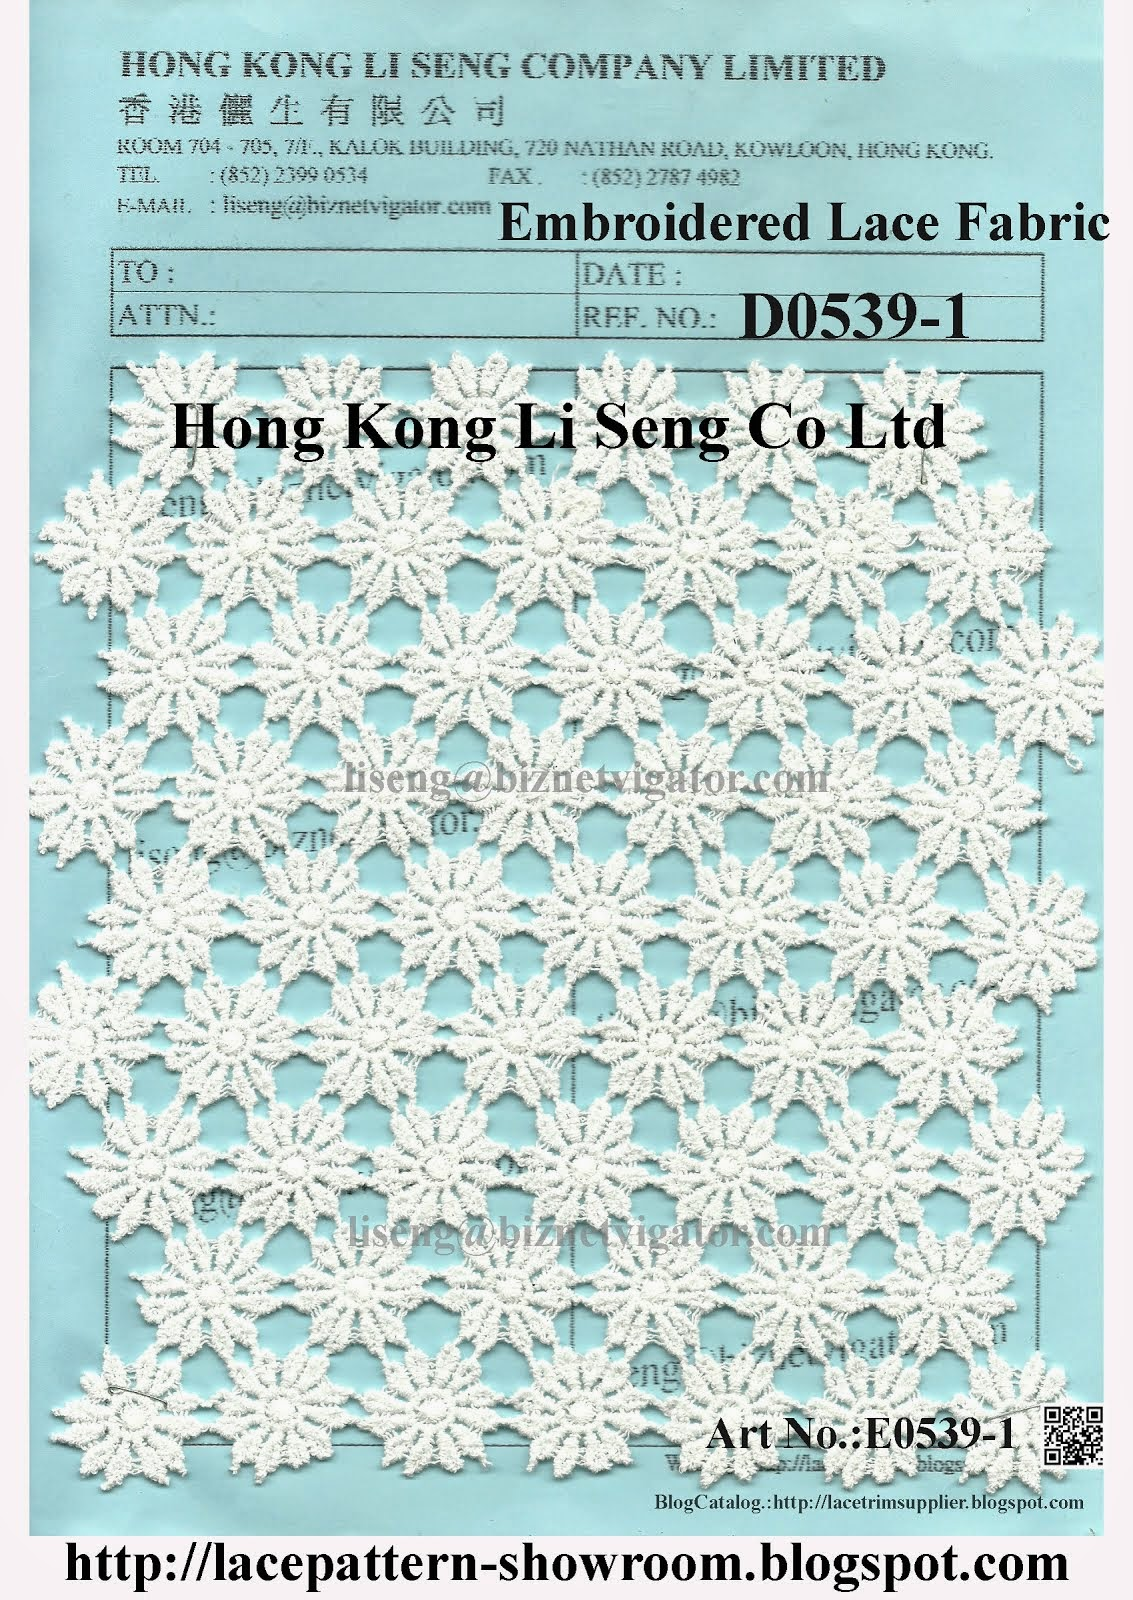 Embroidered Lace Fabric Factory - Hong Kong Li Seng Co Ltd